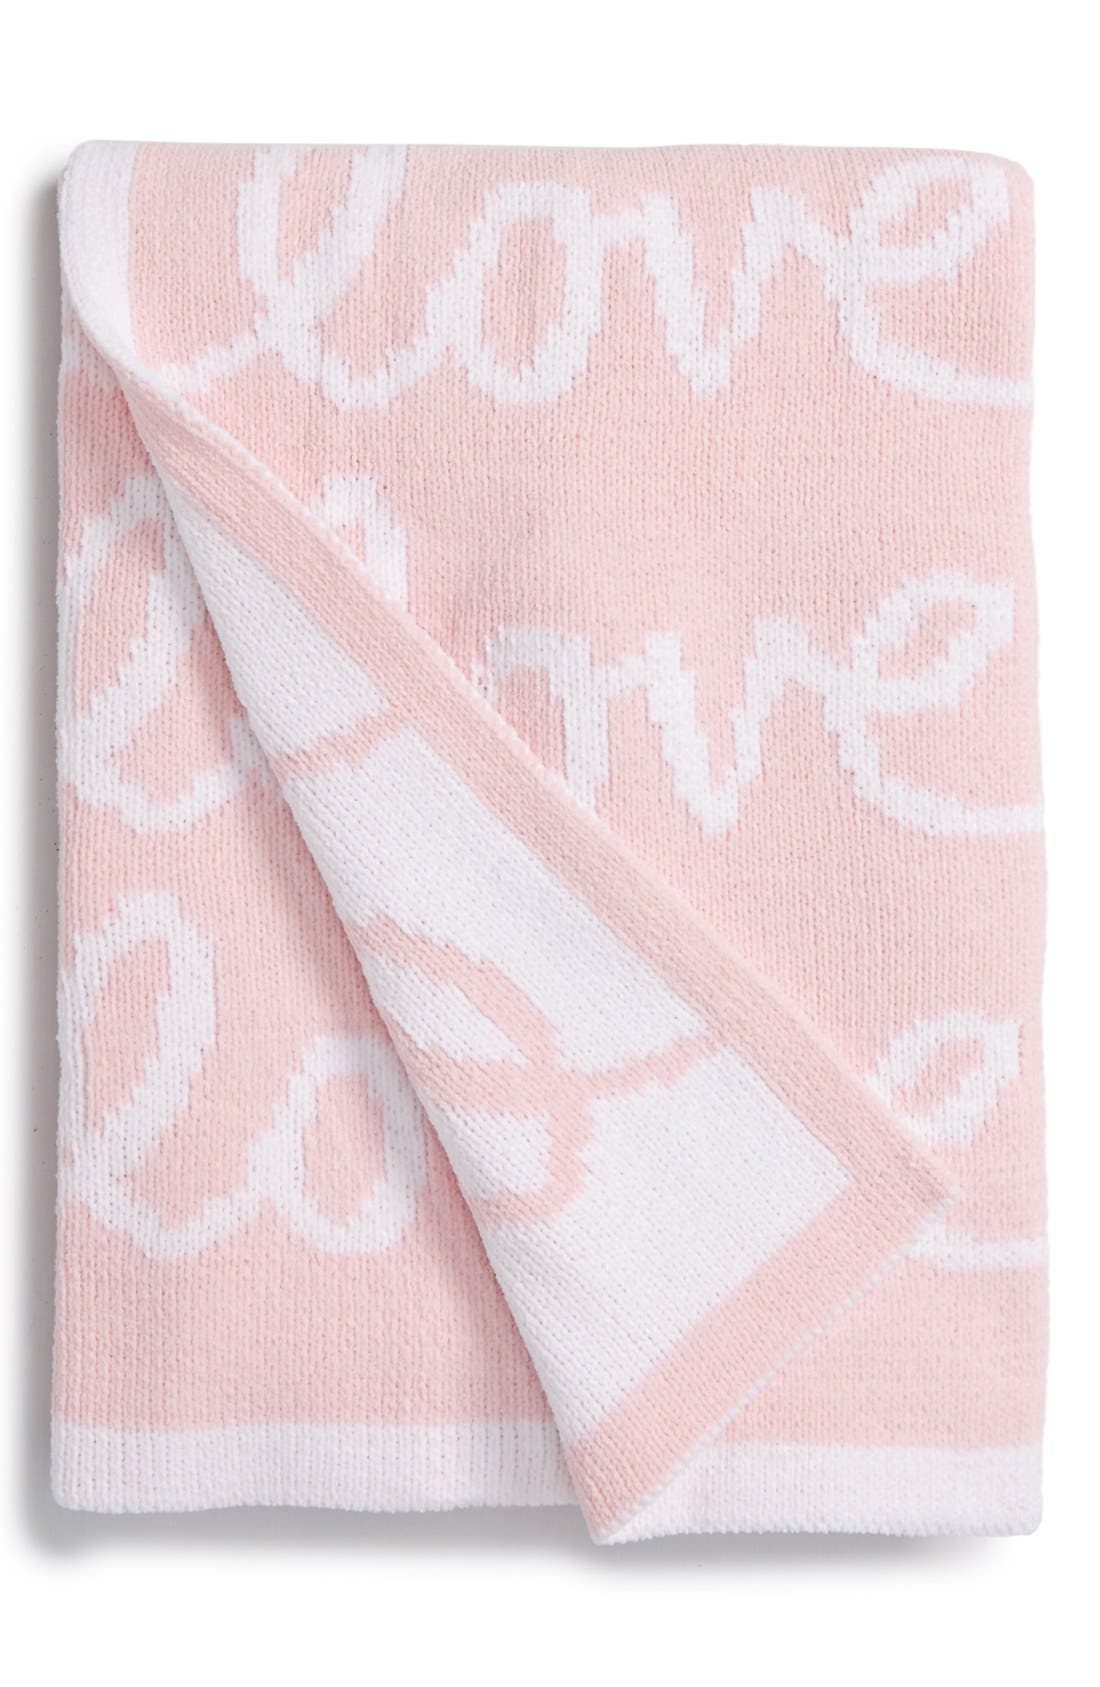 Chenille Blanket,                         Main,                         color, Pink Baby Love